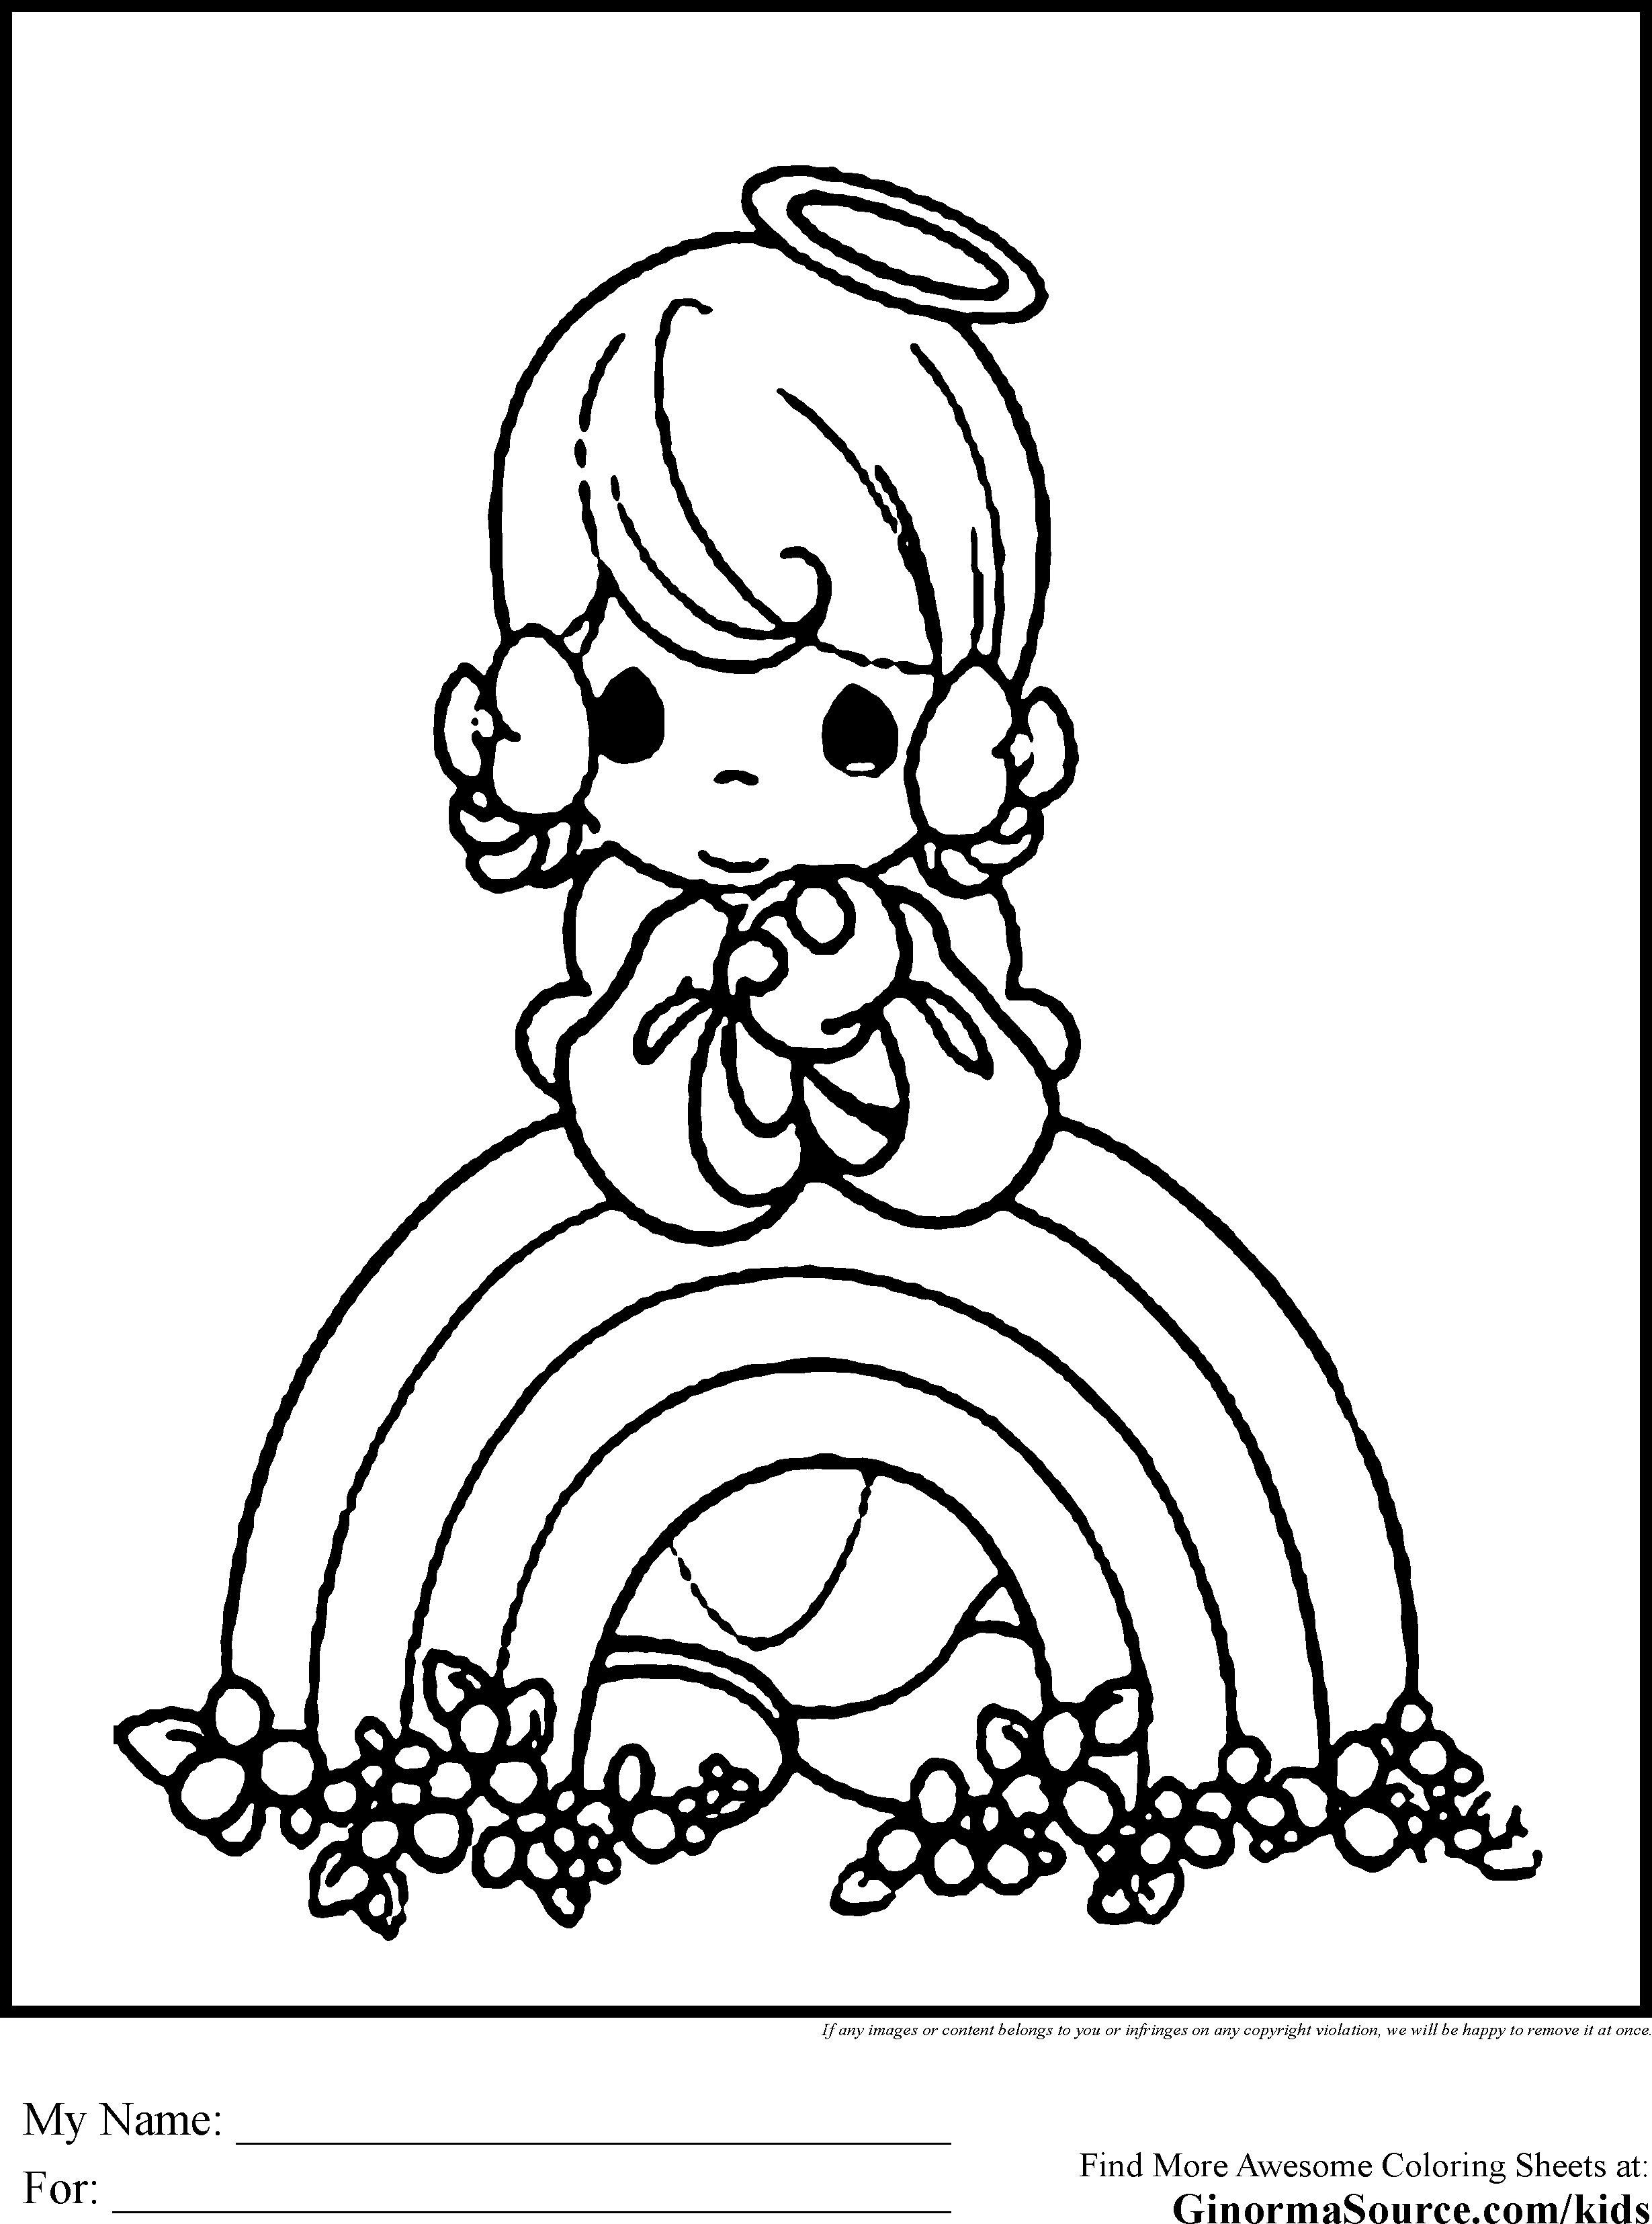 Coloring Sheets You Can Print | Cute Coloring Pages to Print ...